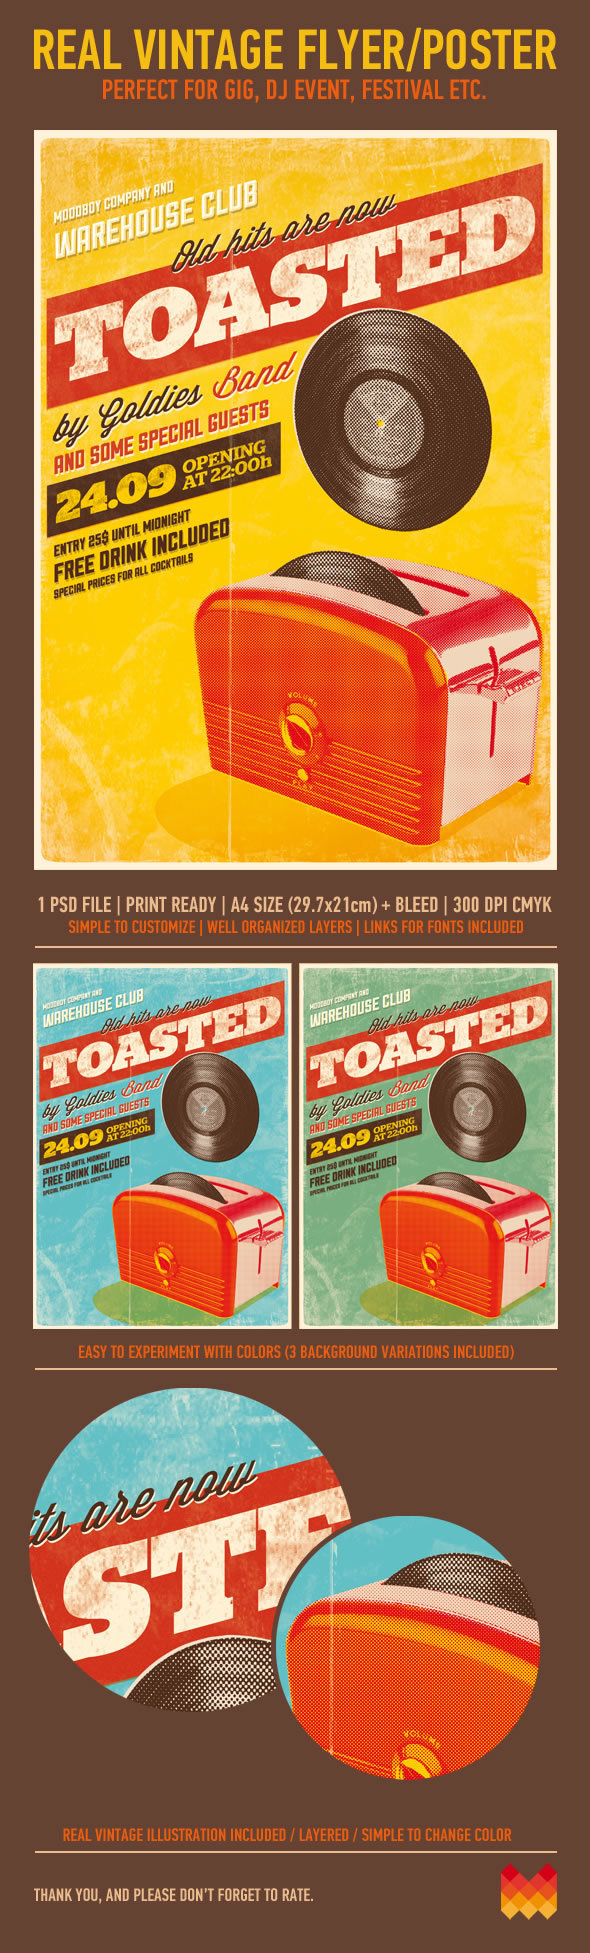 http://www.behance.net/gallery/Toasted-Vintage-Poster-PSD/5357923